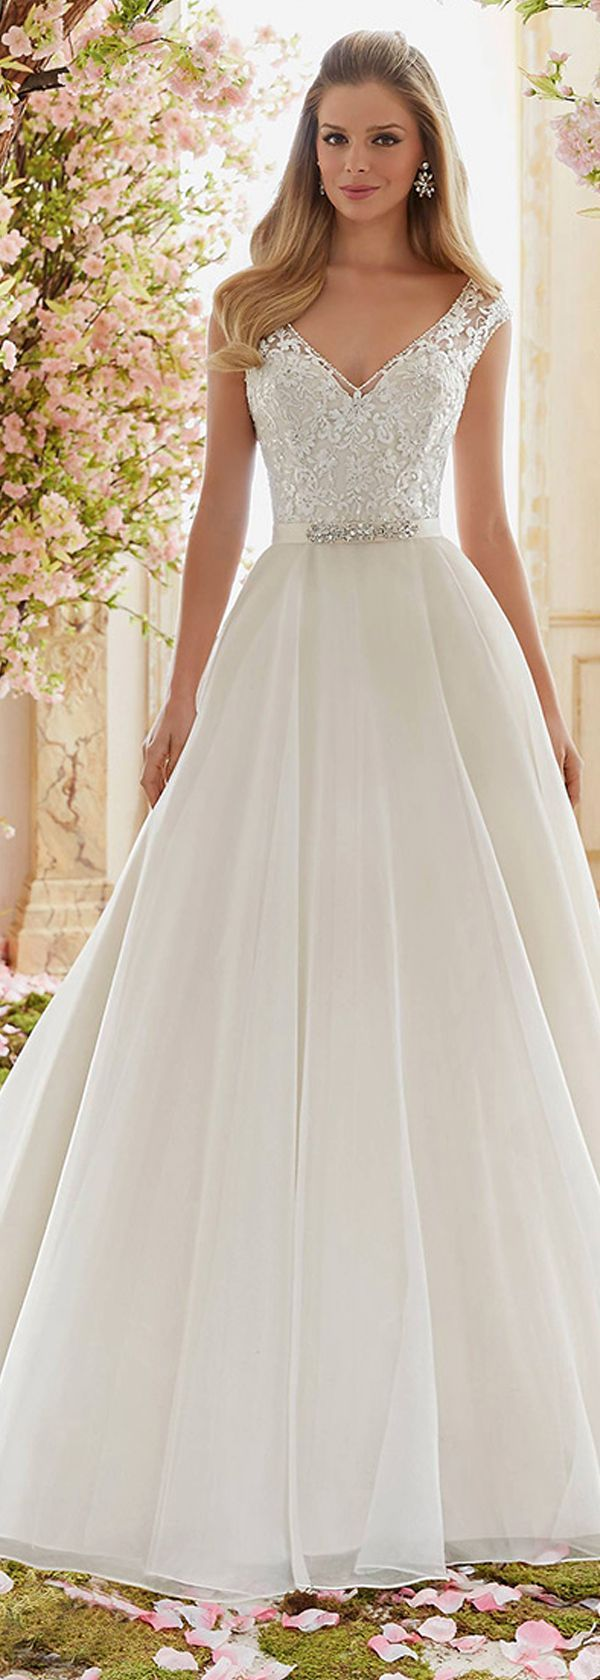 Graceful Tulle V-neck Neckline A-line Wedding Dresses With Lace Appliques